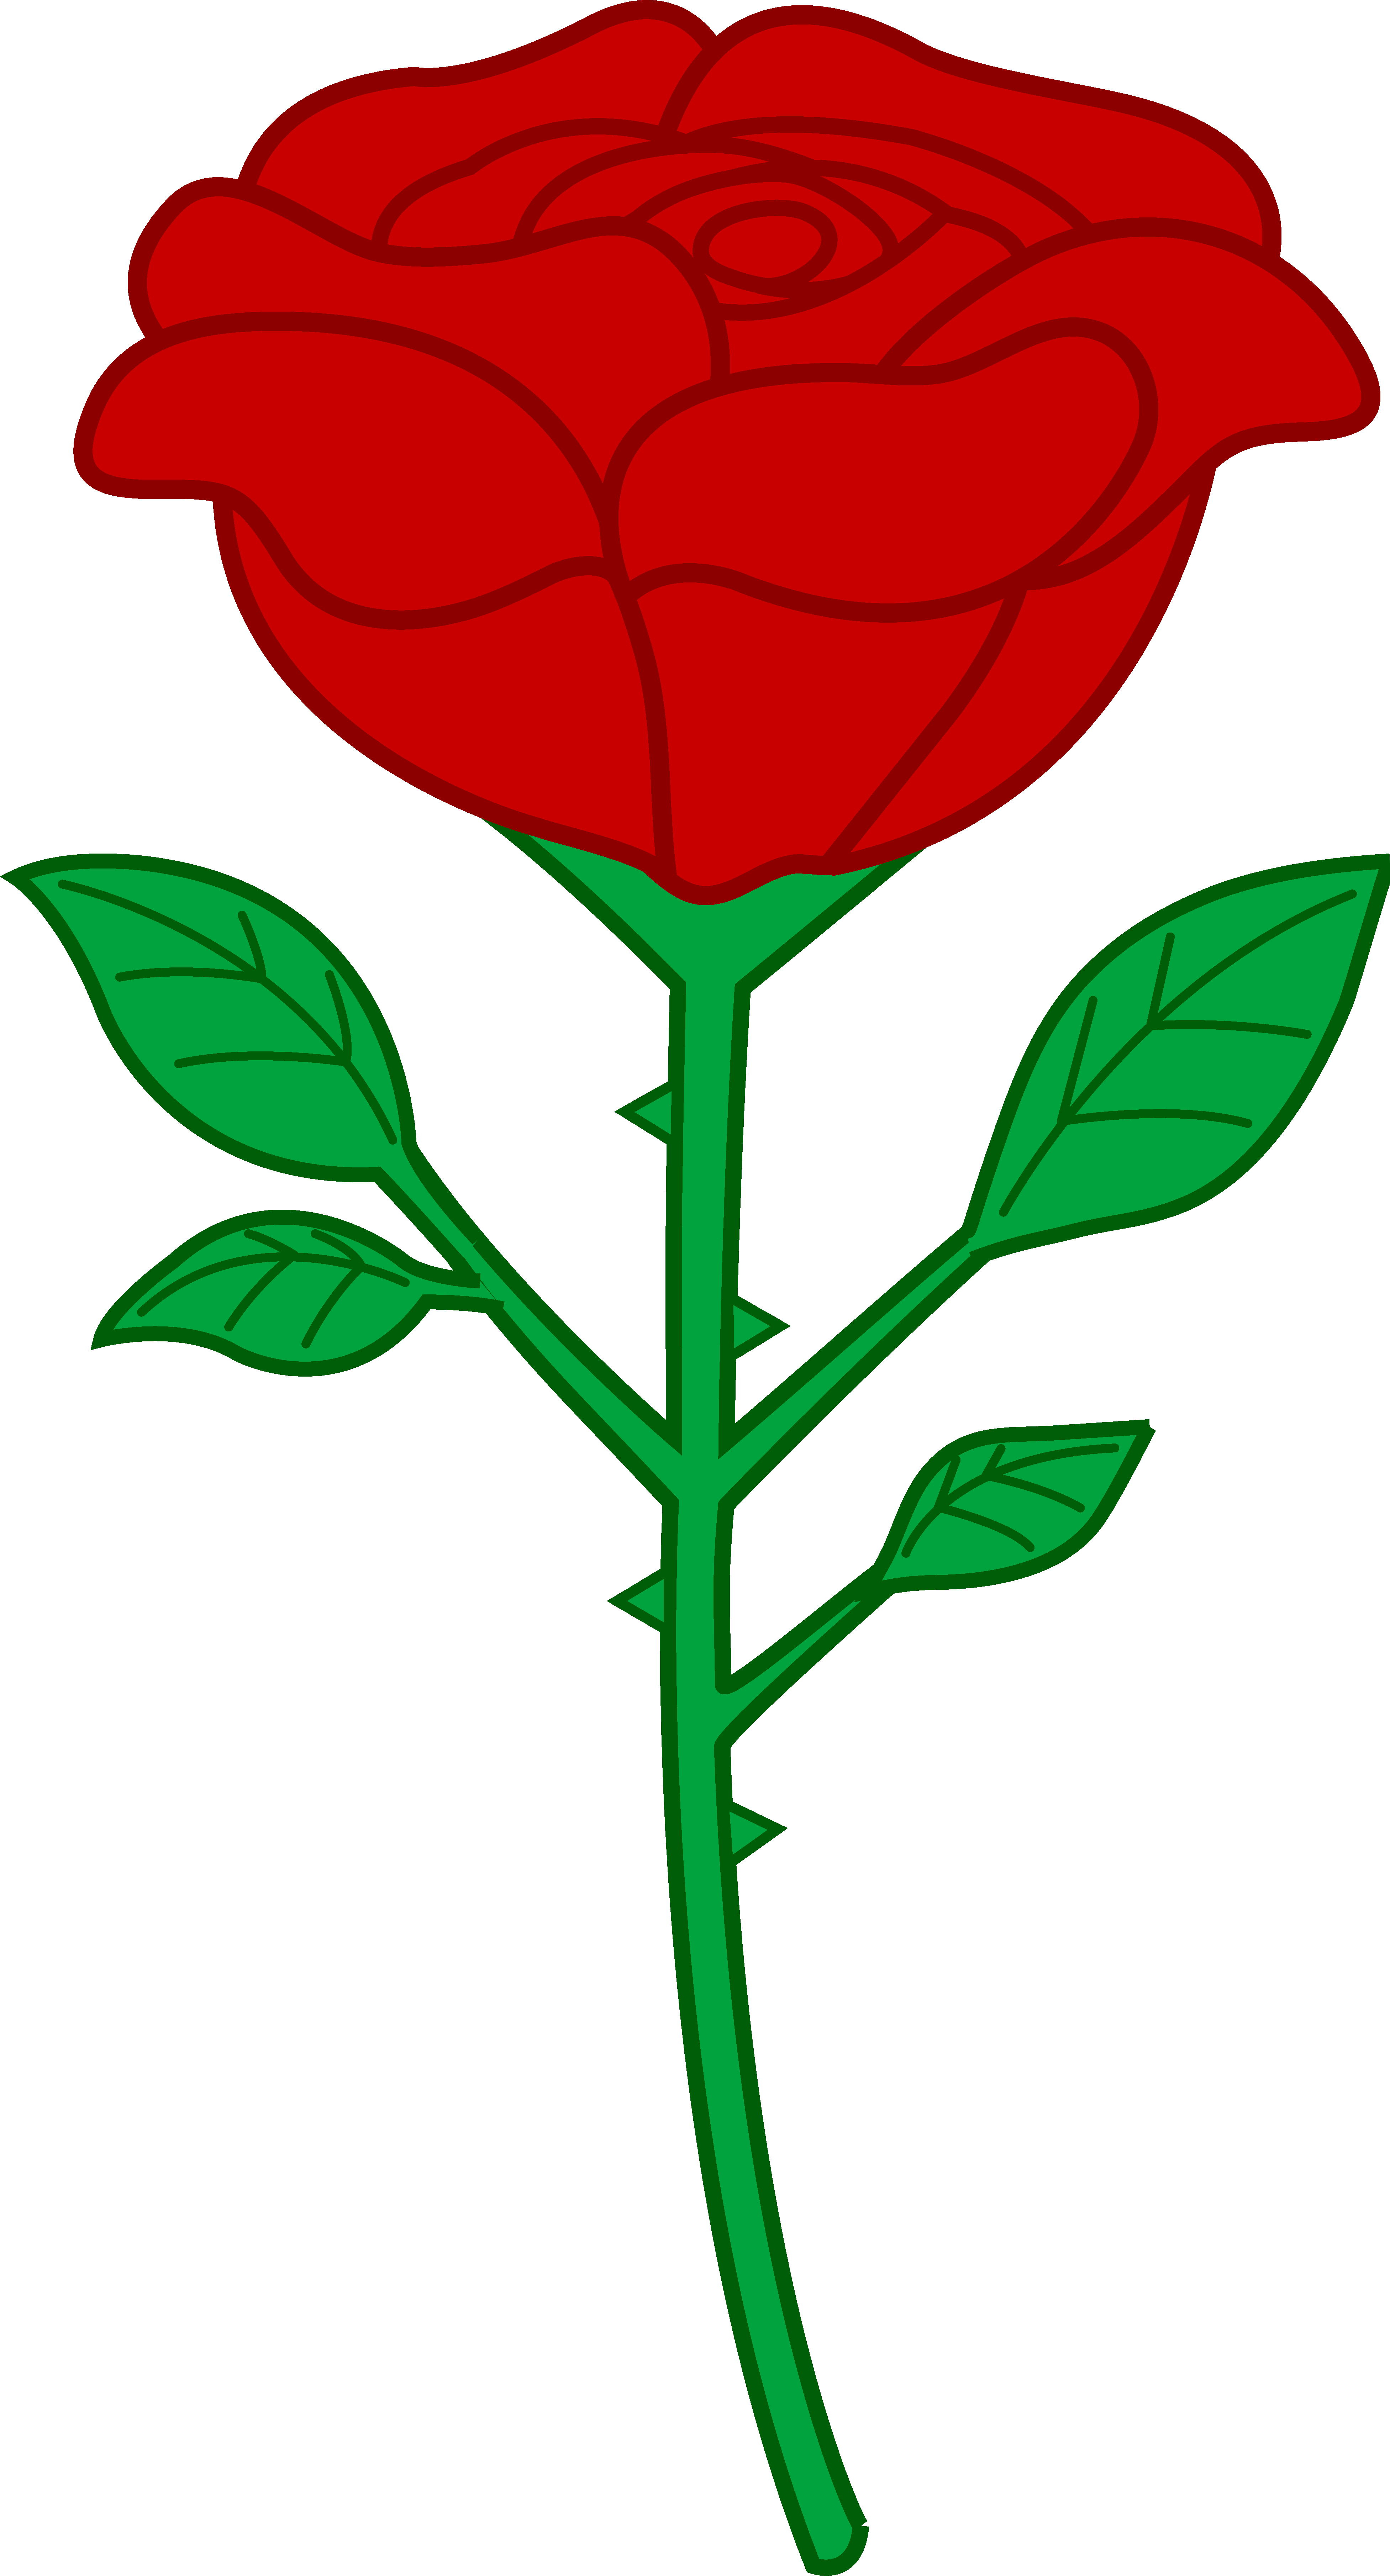 Clipart Rose-clipart rose-1